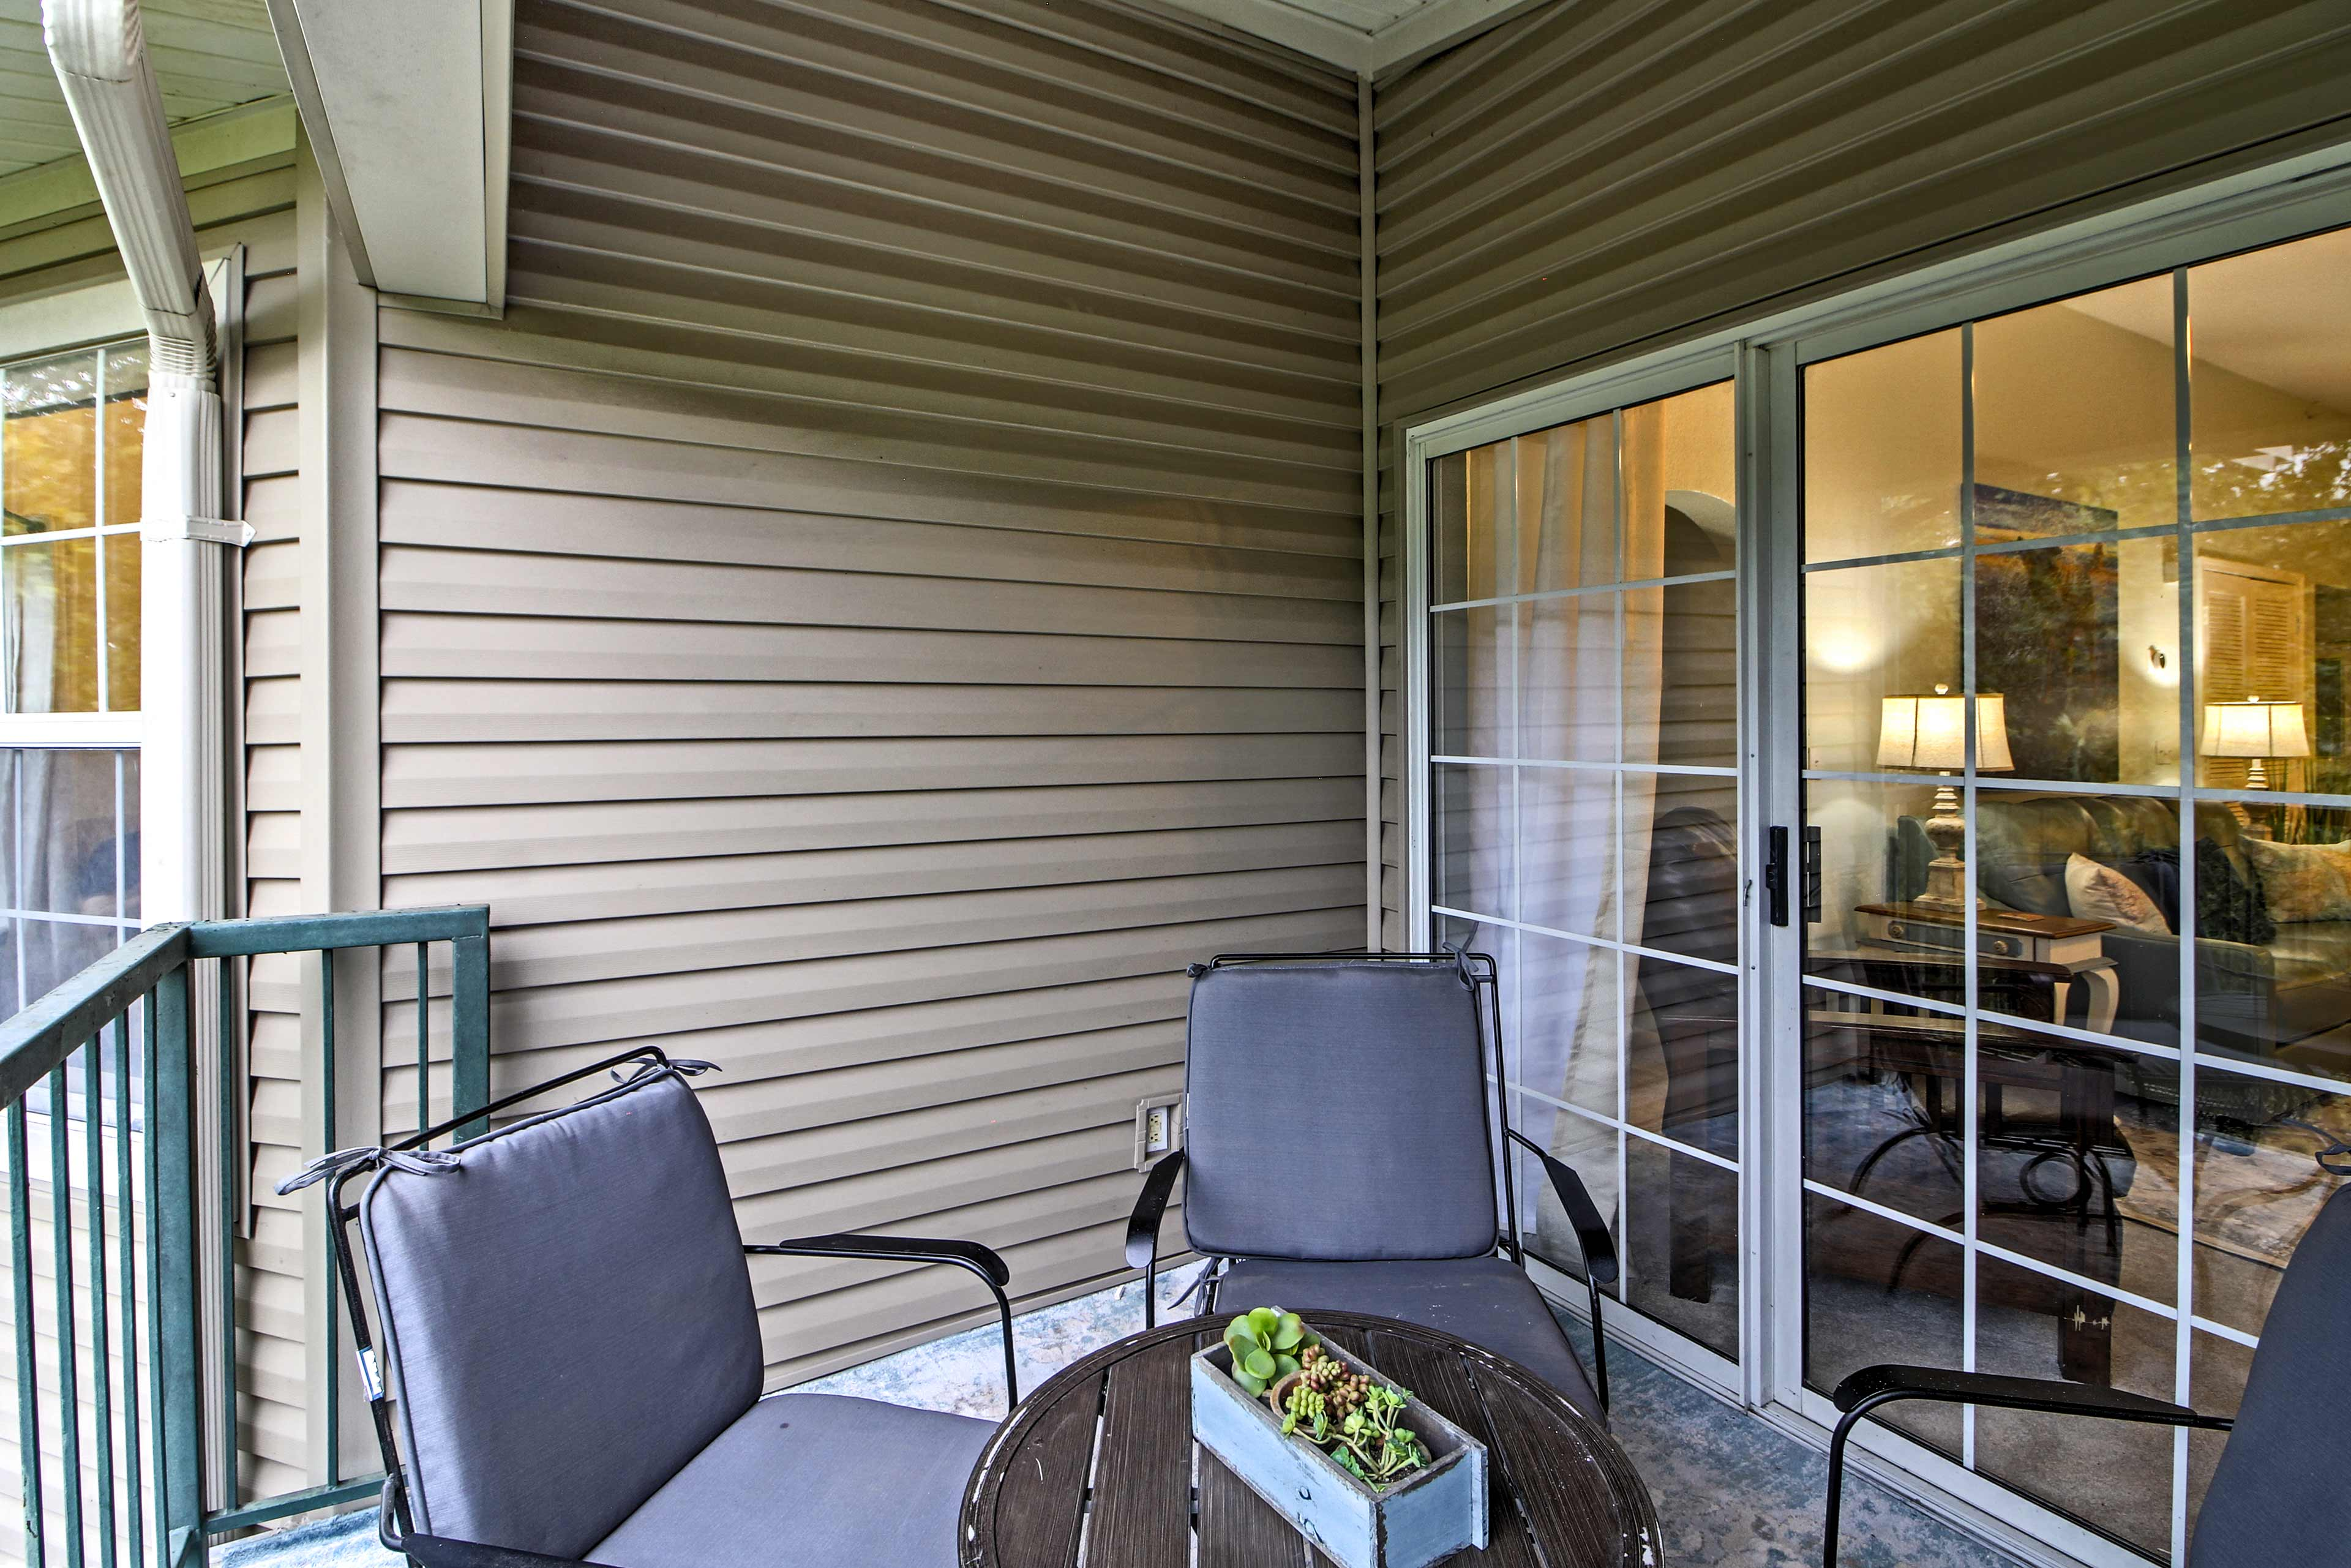 Sip a nightcap on the private balcony featuring ample seating.